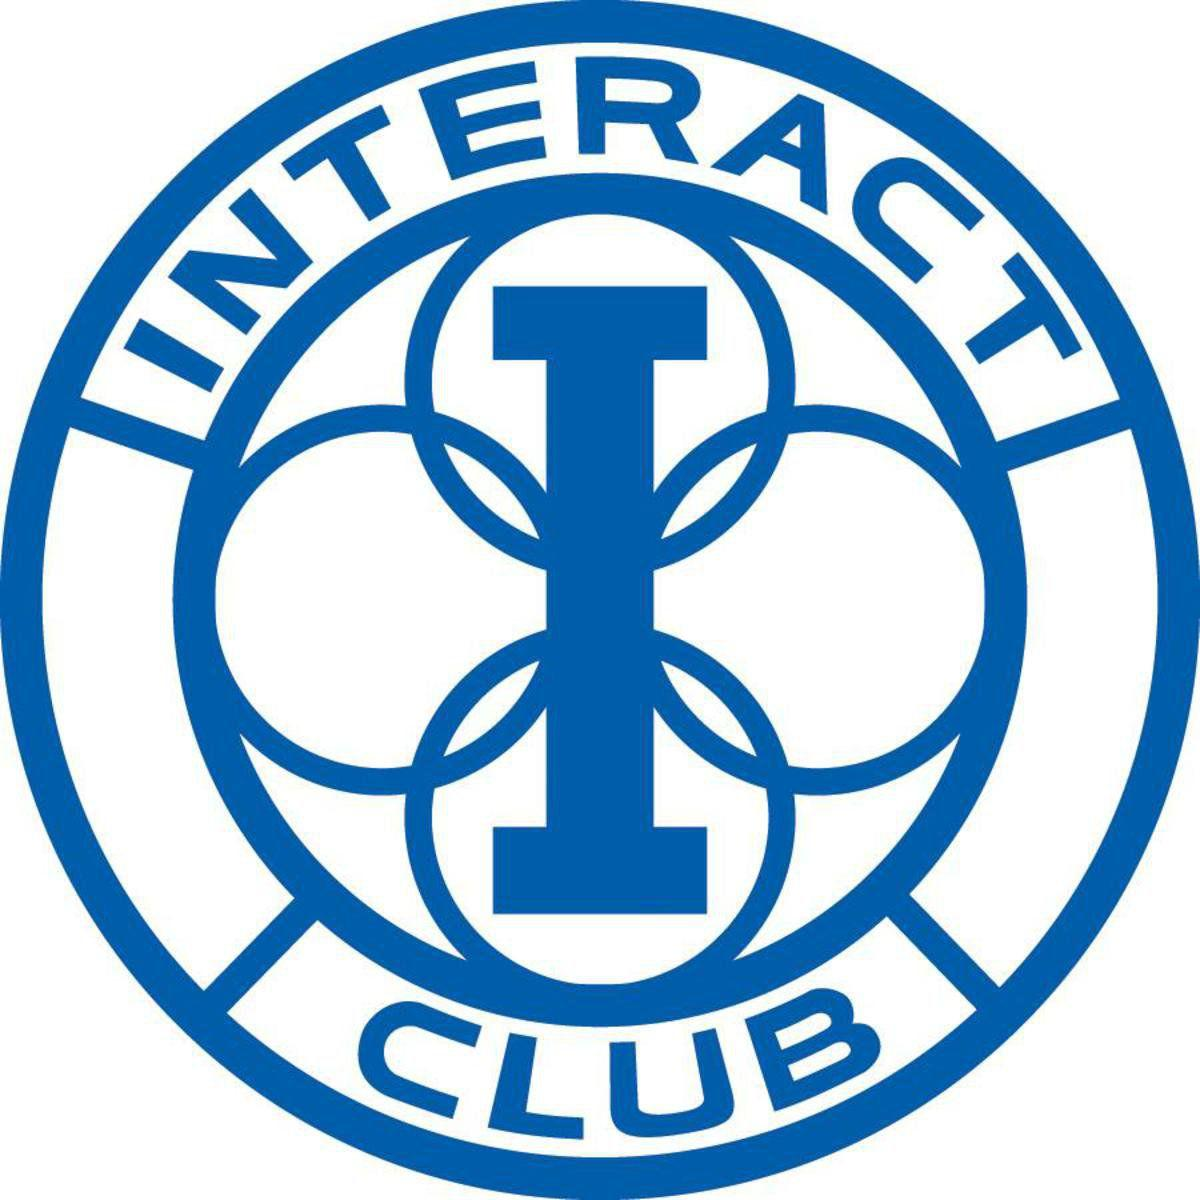 Service-oriented Interact Club launching in Caldwell County